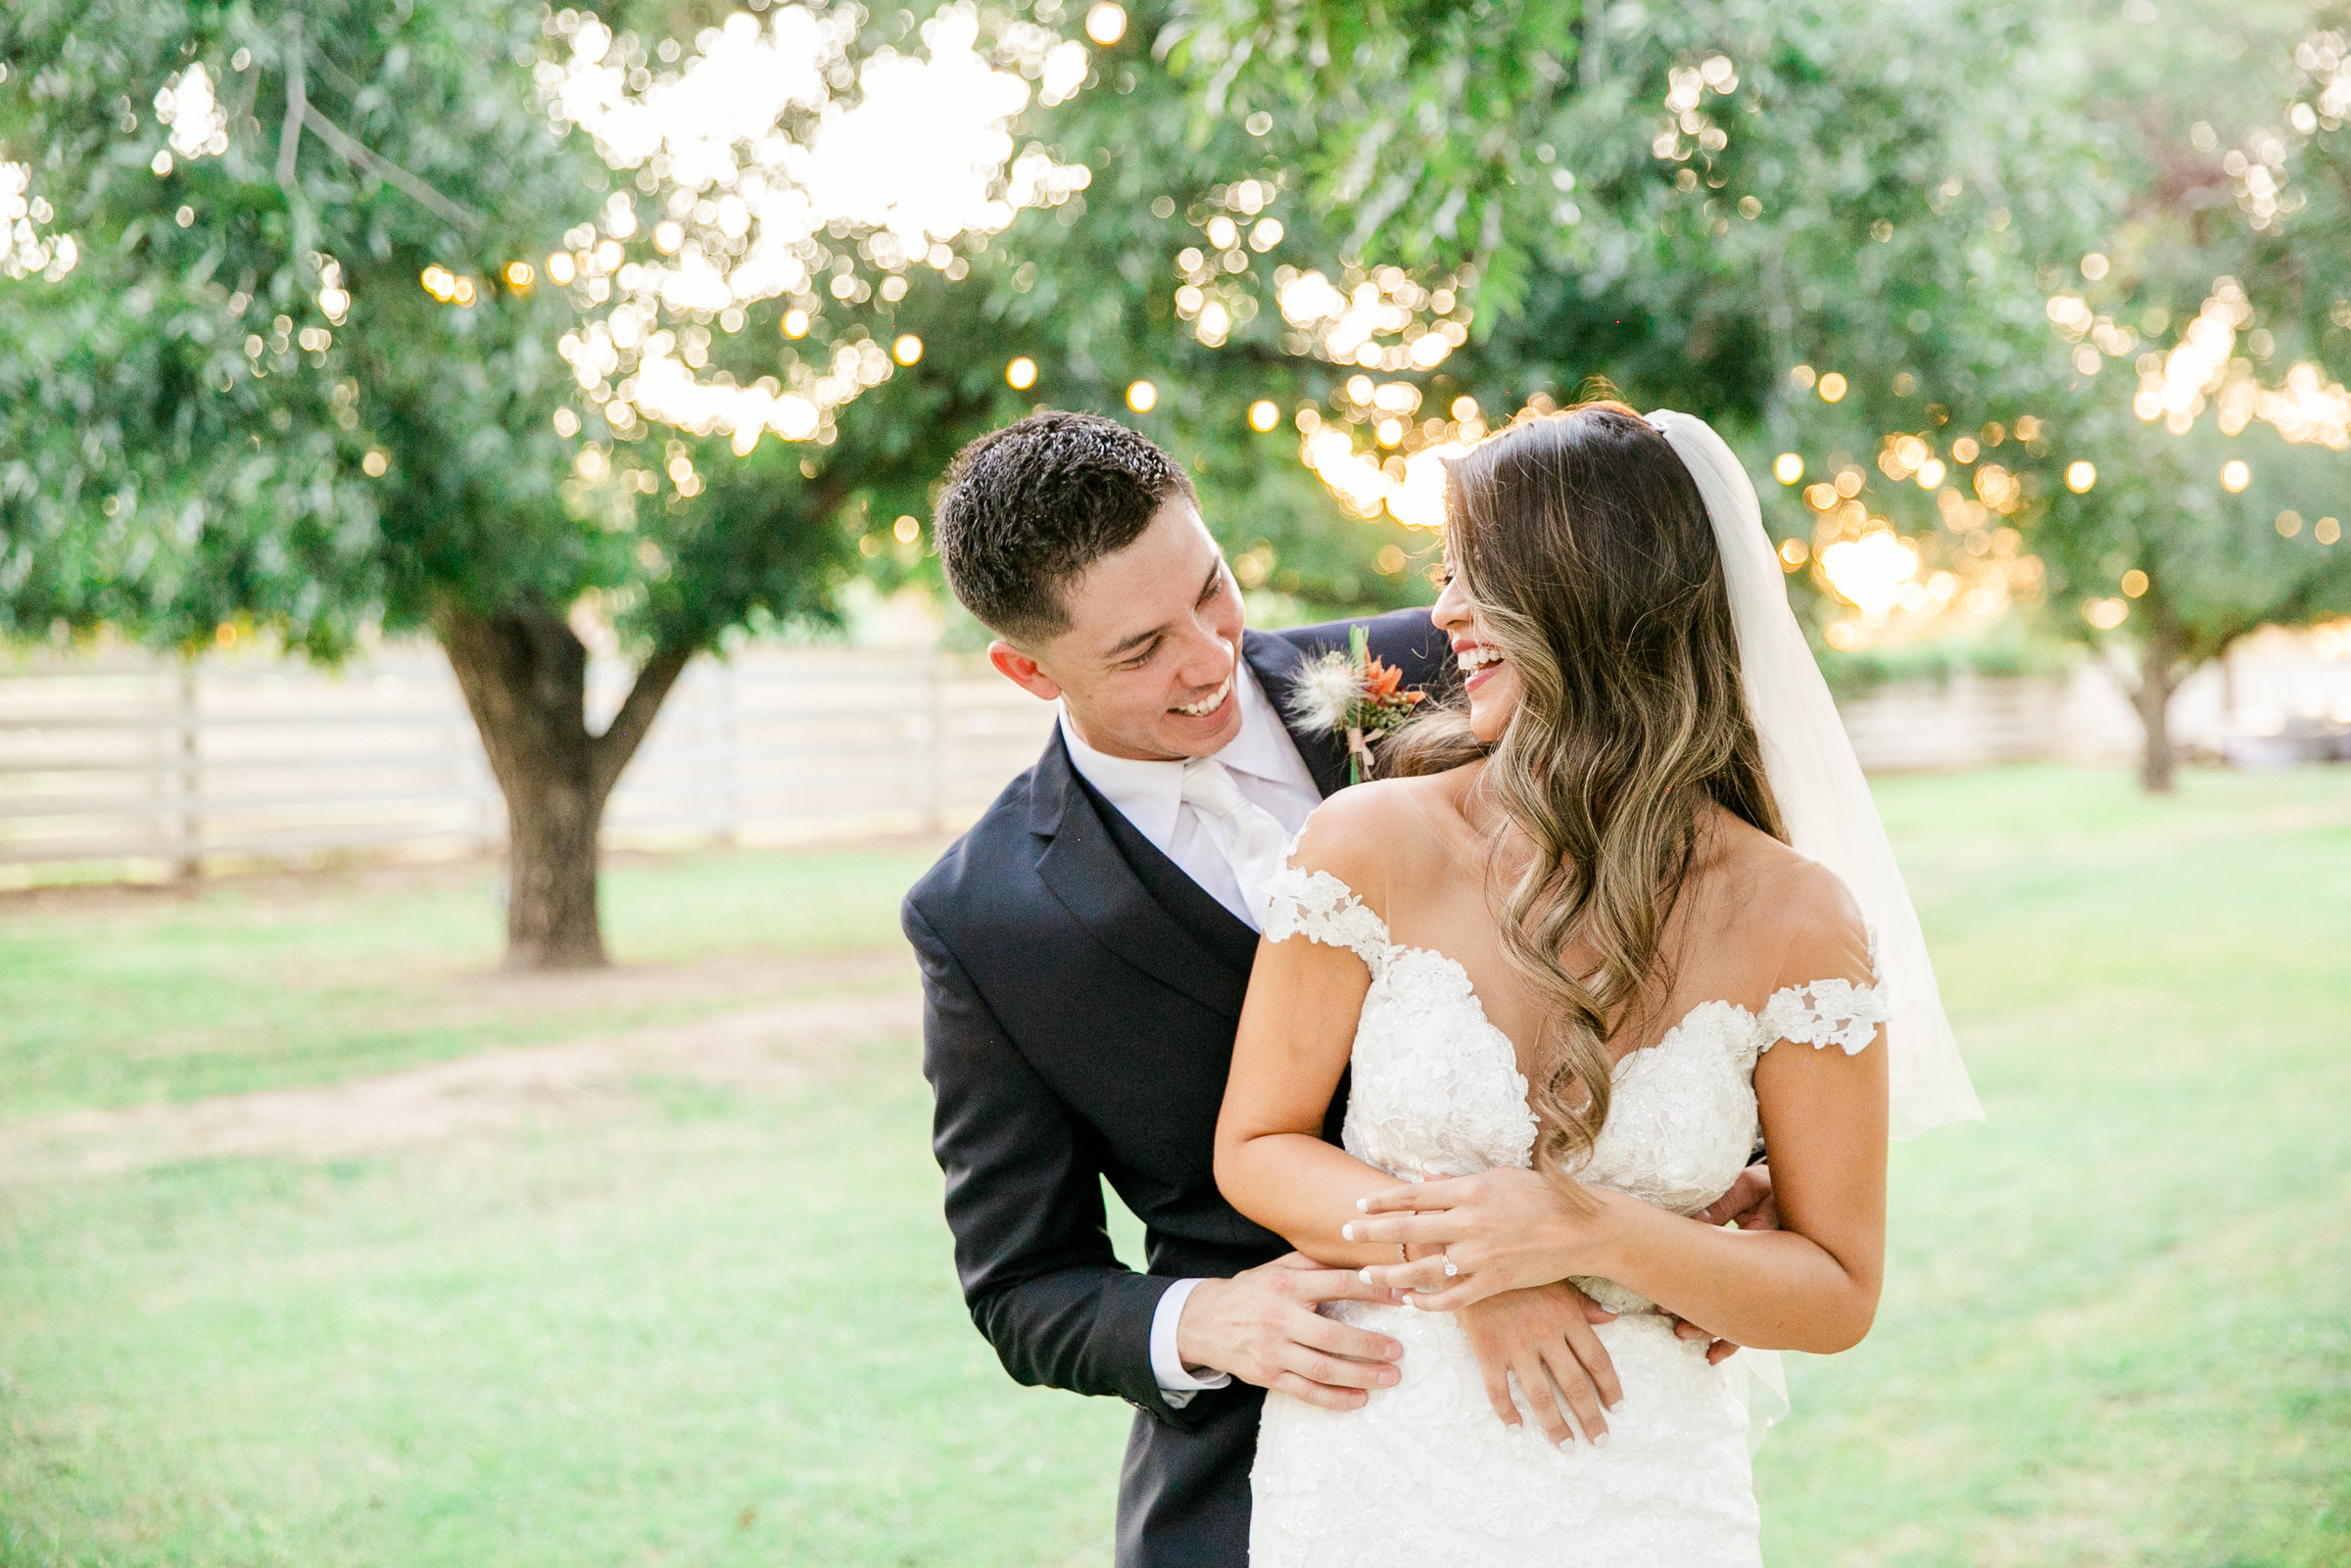 Karlie Colleen Photography - Phoenix Arizona - Farm At South Mountain Venue - Vanessa & Robert-638